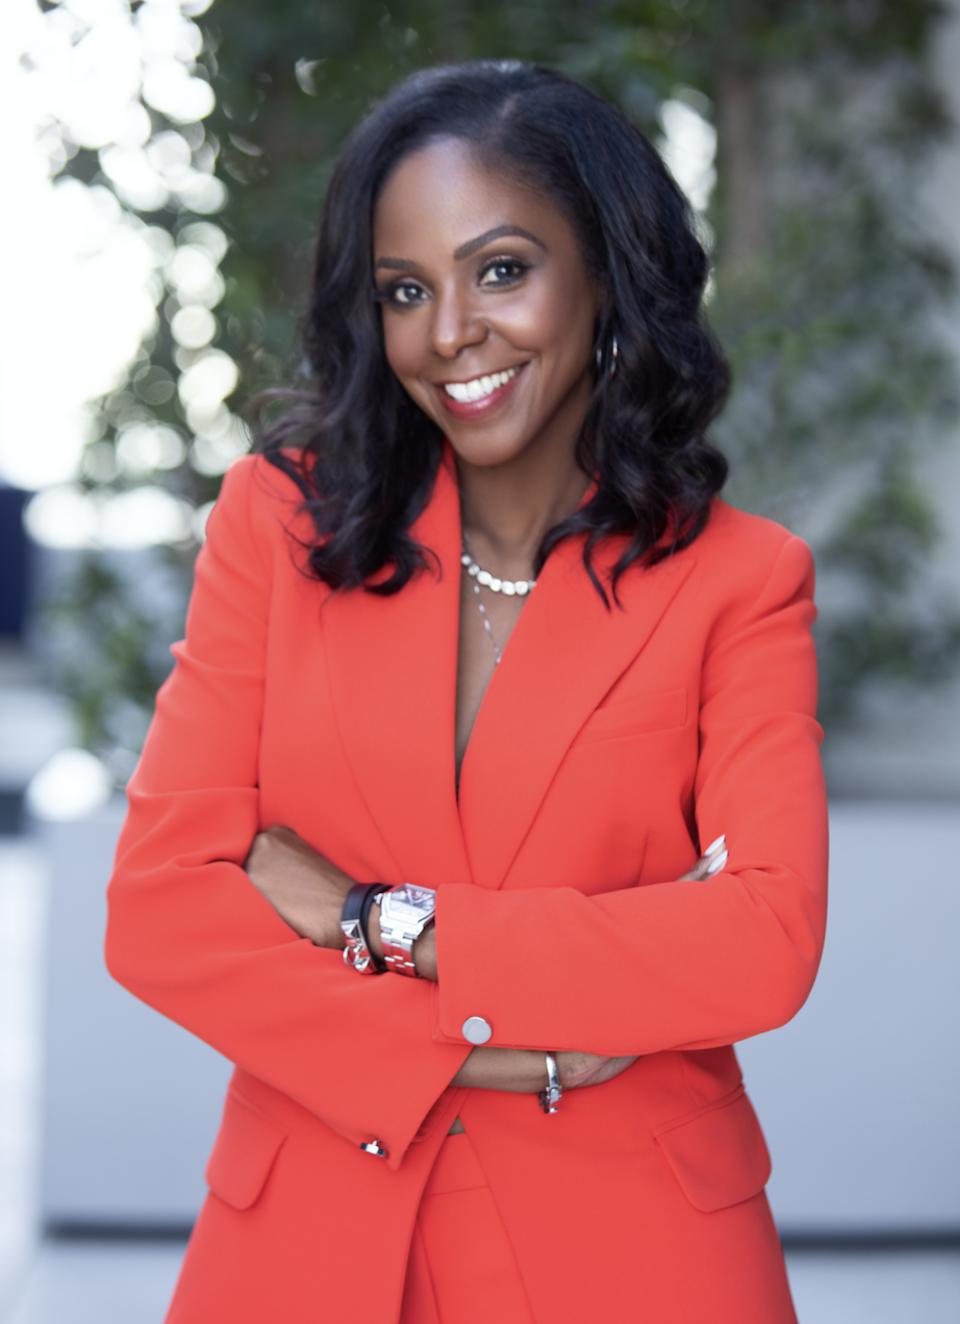 Kimberly Evans Paige, EVP, Chief Marketing Officer, BET Networks & Live Events